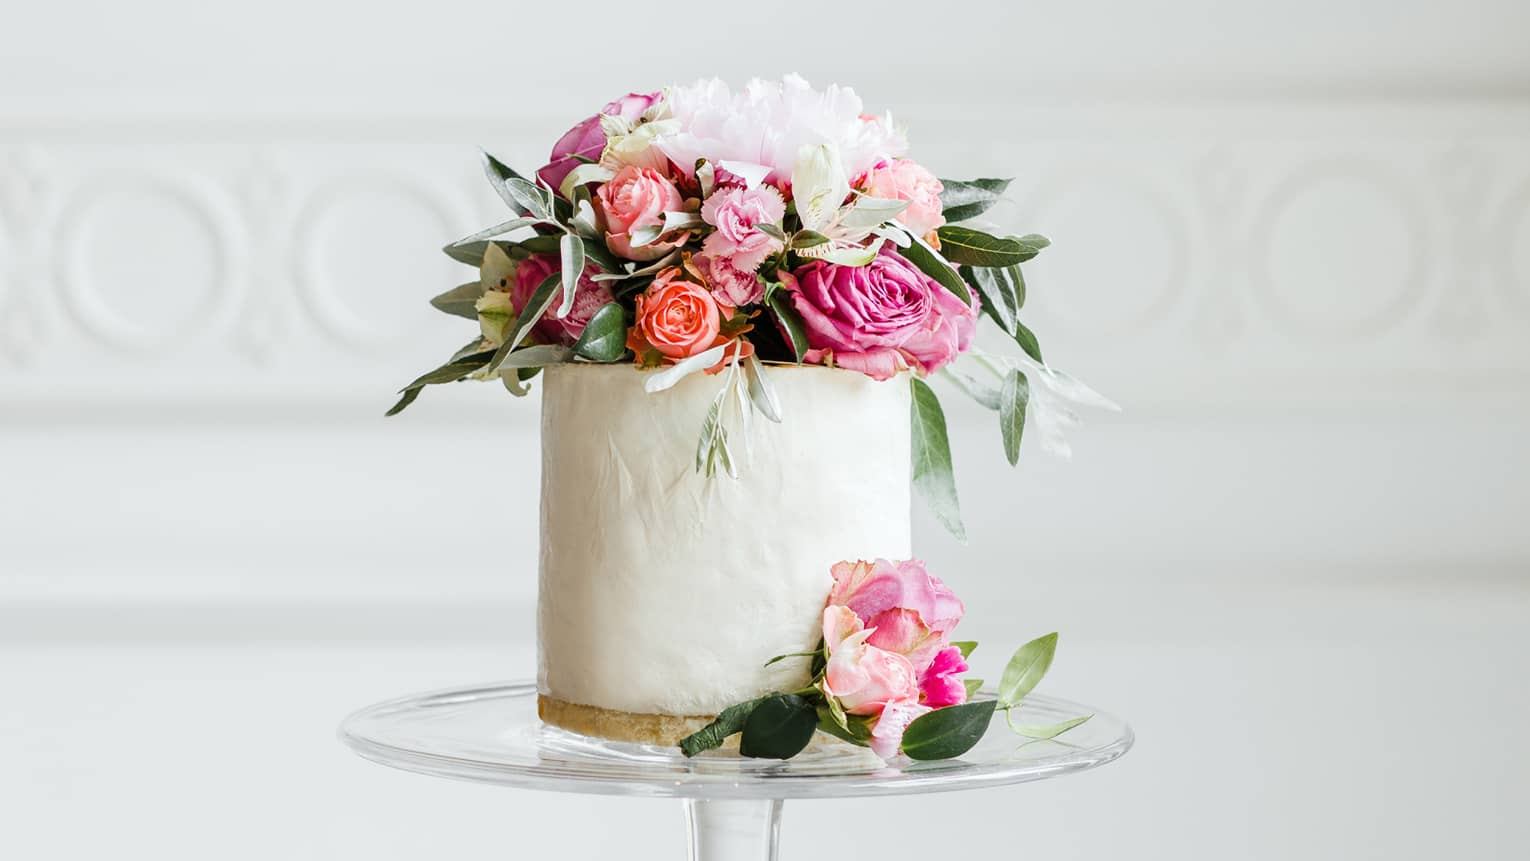 Elegant small white wedding cake topped with fresh pink and white roses